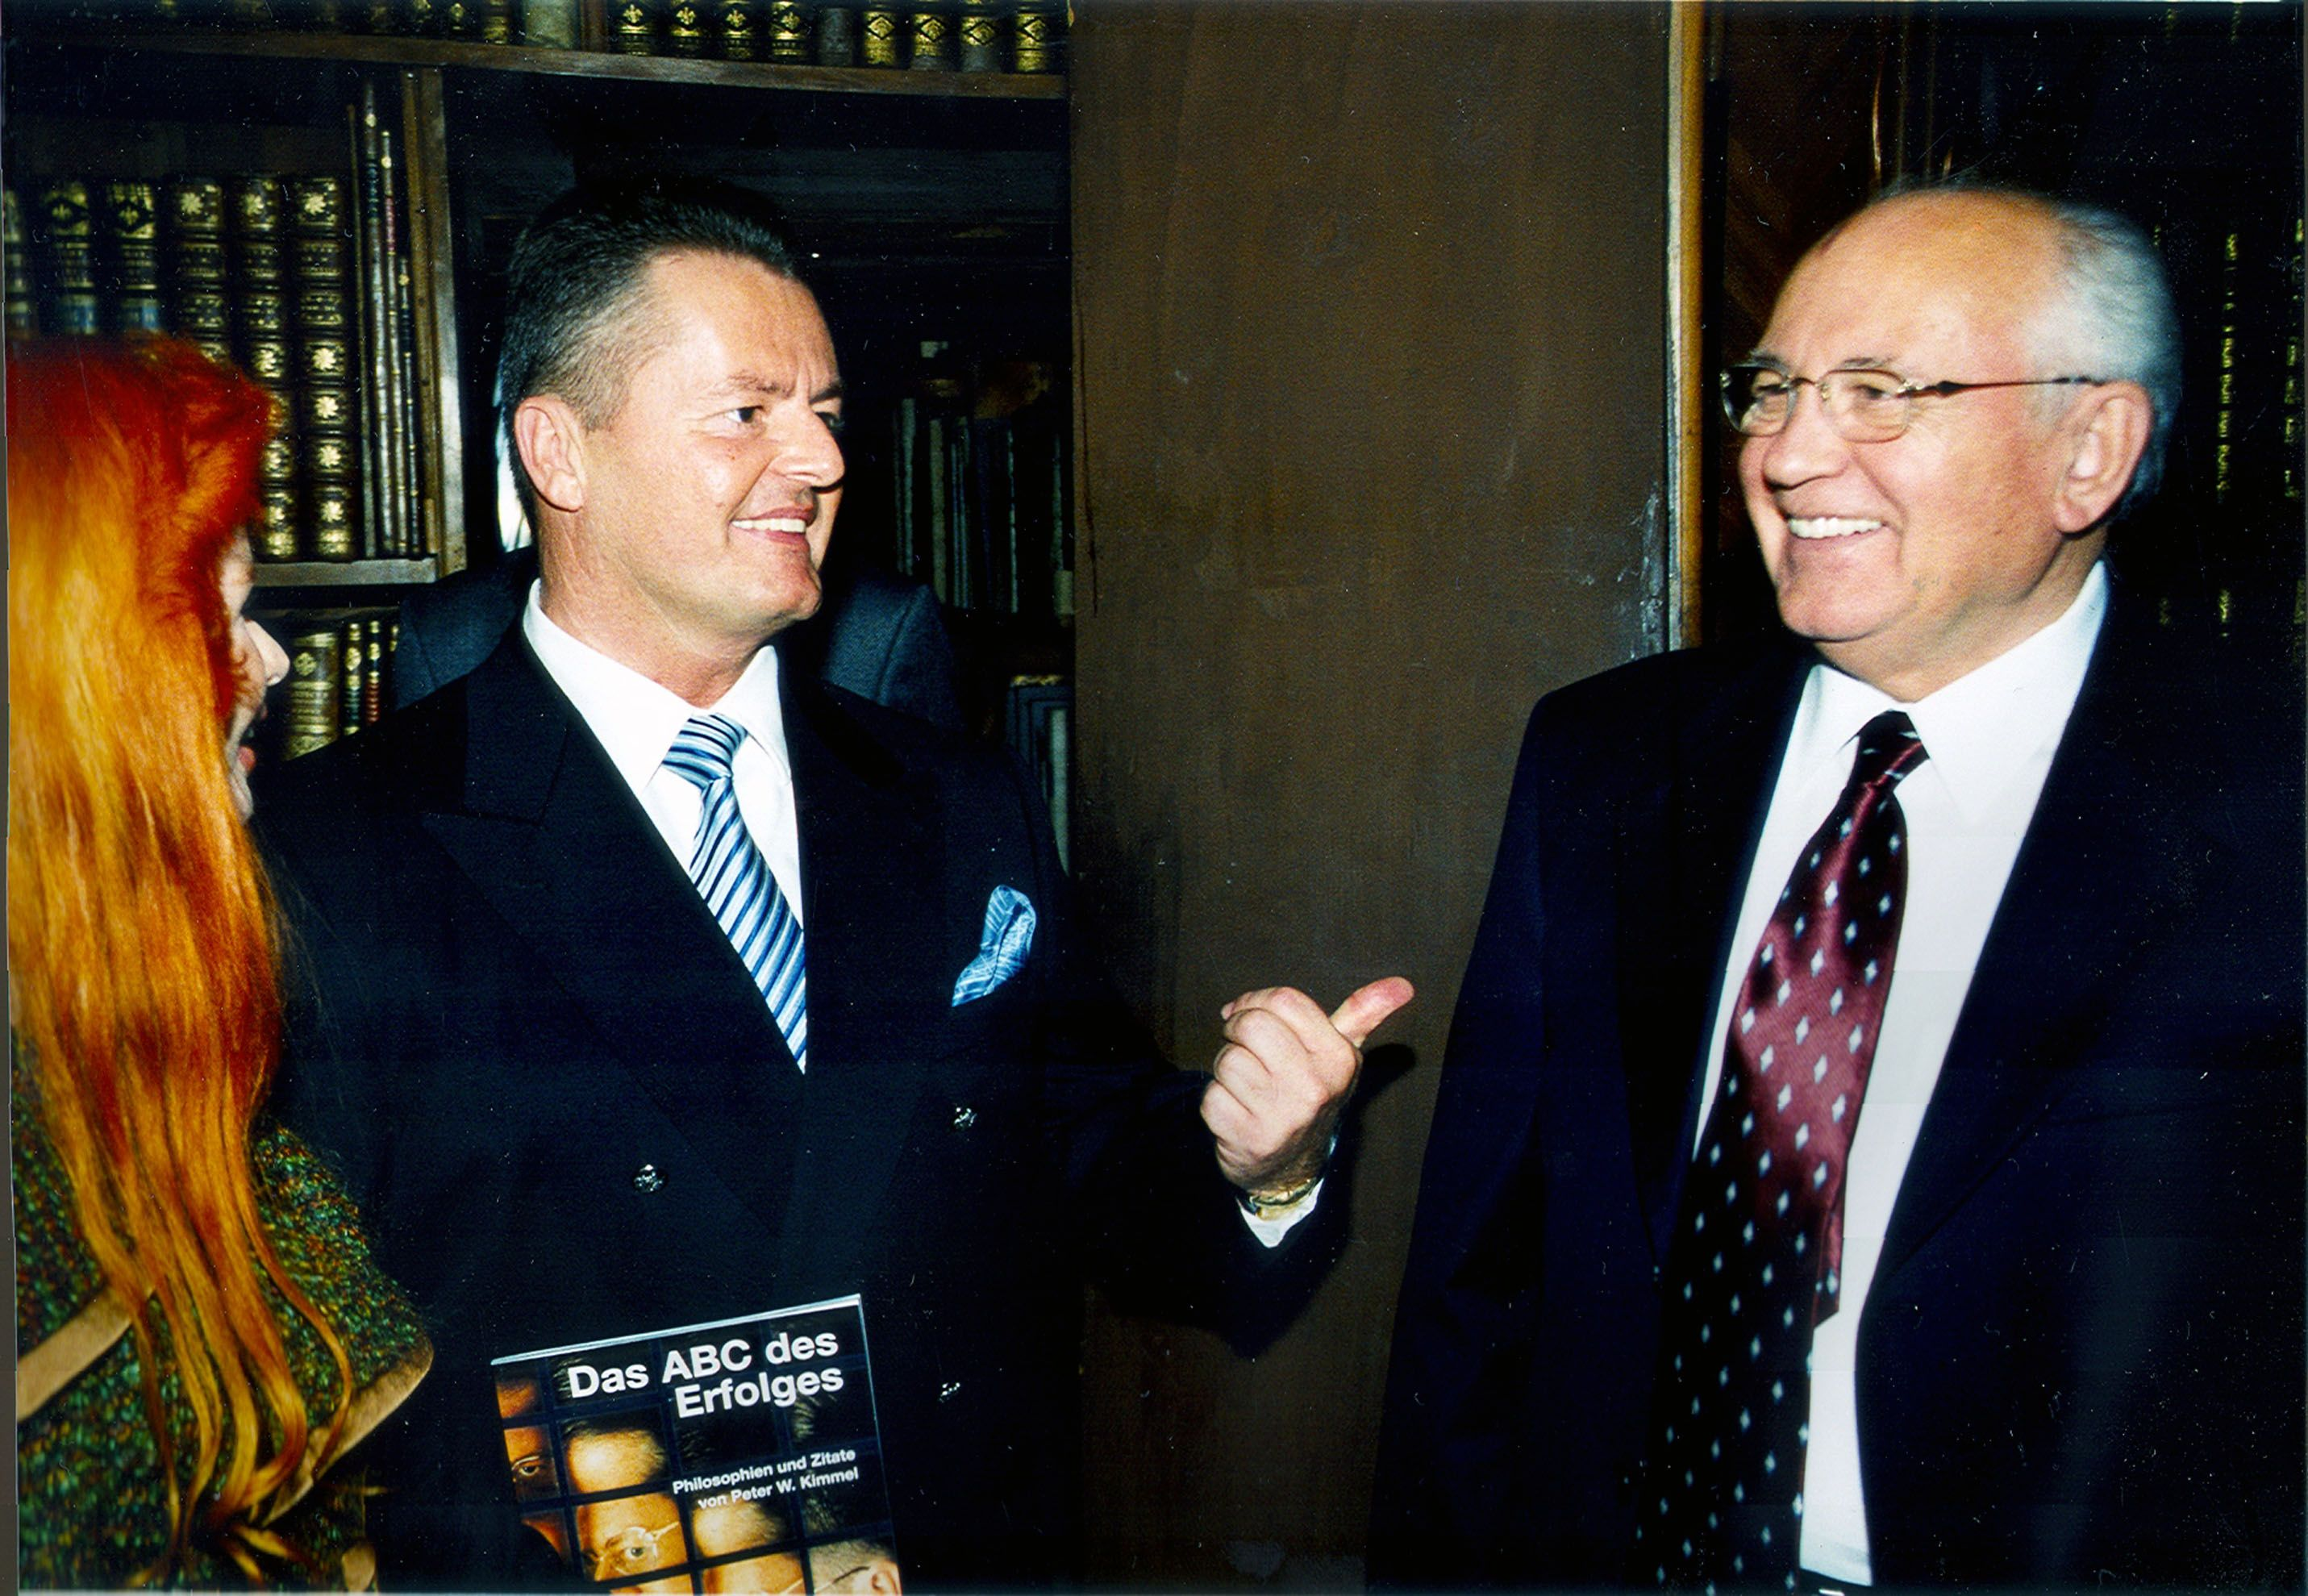 President Mikhael Gorbachev & the Chairman of the Committee of the World Award Peter Kimmel